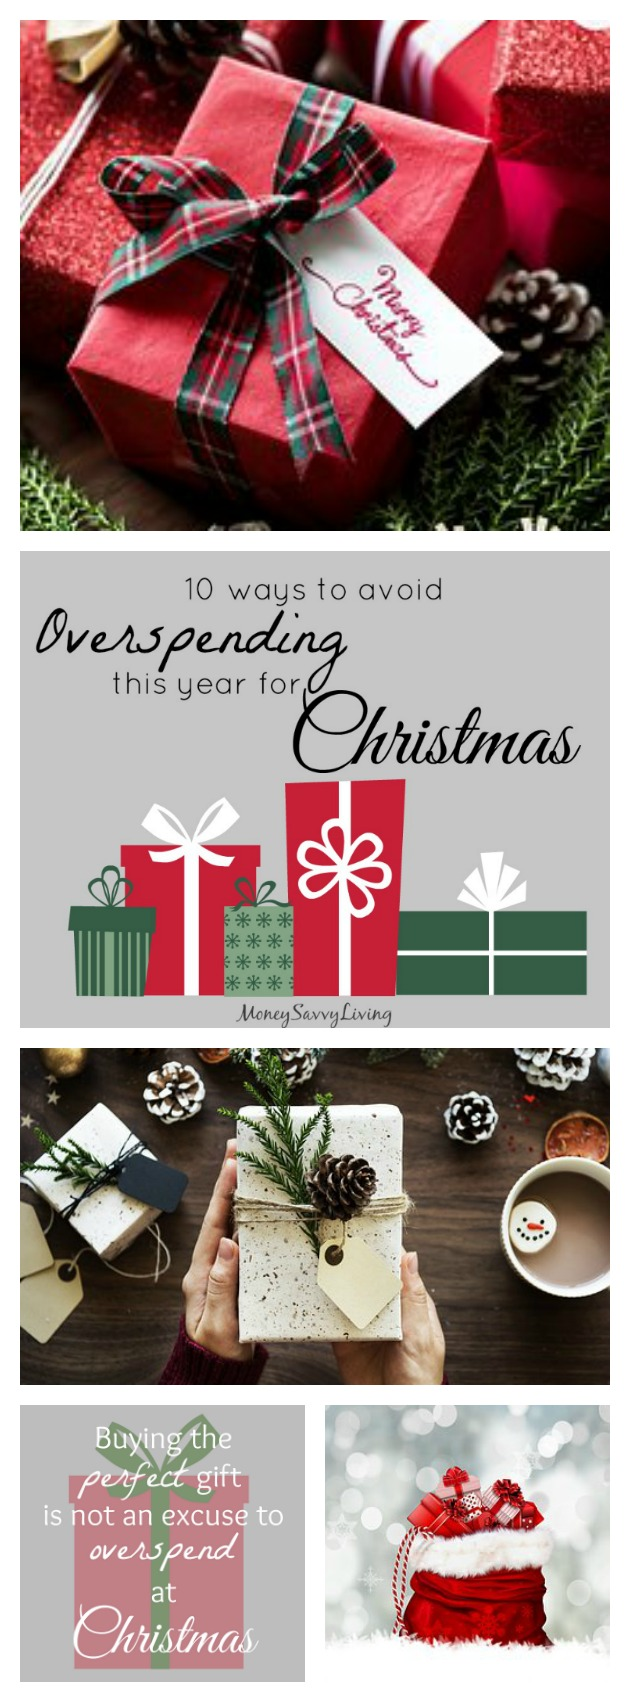 Make sure that you don't end up with a huge credit card bill for the New Year. Check out these 10 Ways to Avoid Overspending This Christmas. #budget #Christmas #Christmasgifts #gifts #Christmasbudget #holiday #shopping #money #finance #newyearsresolution